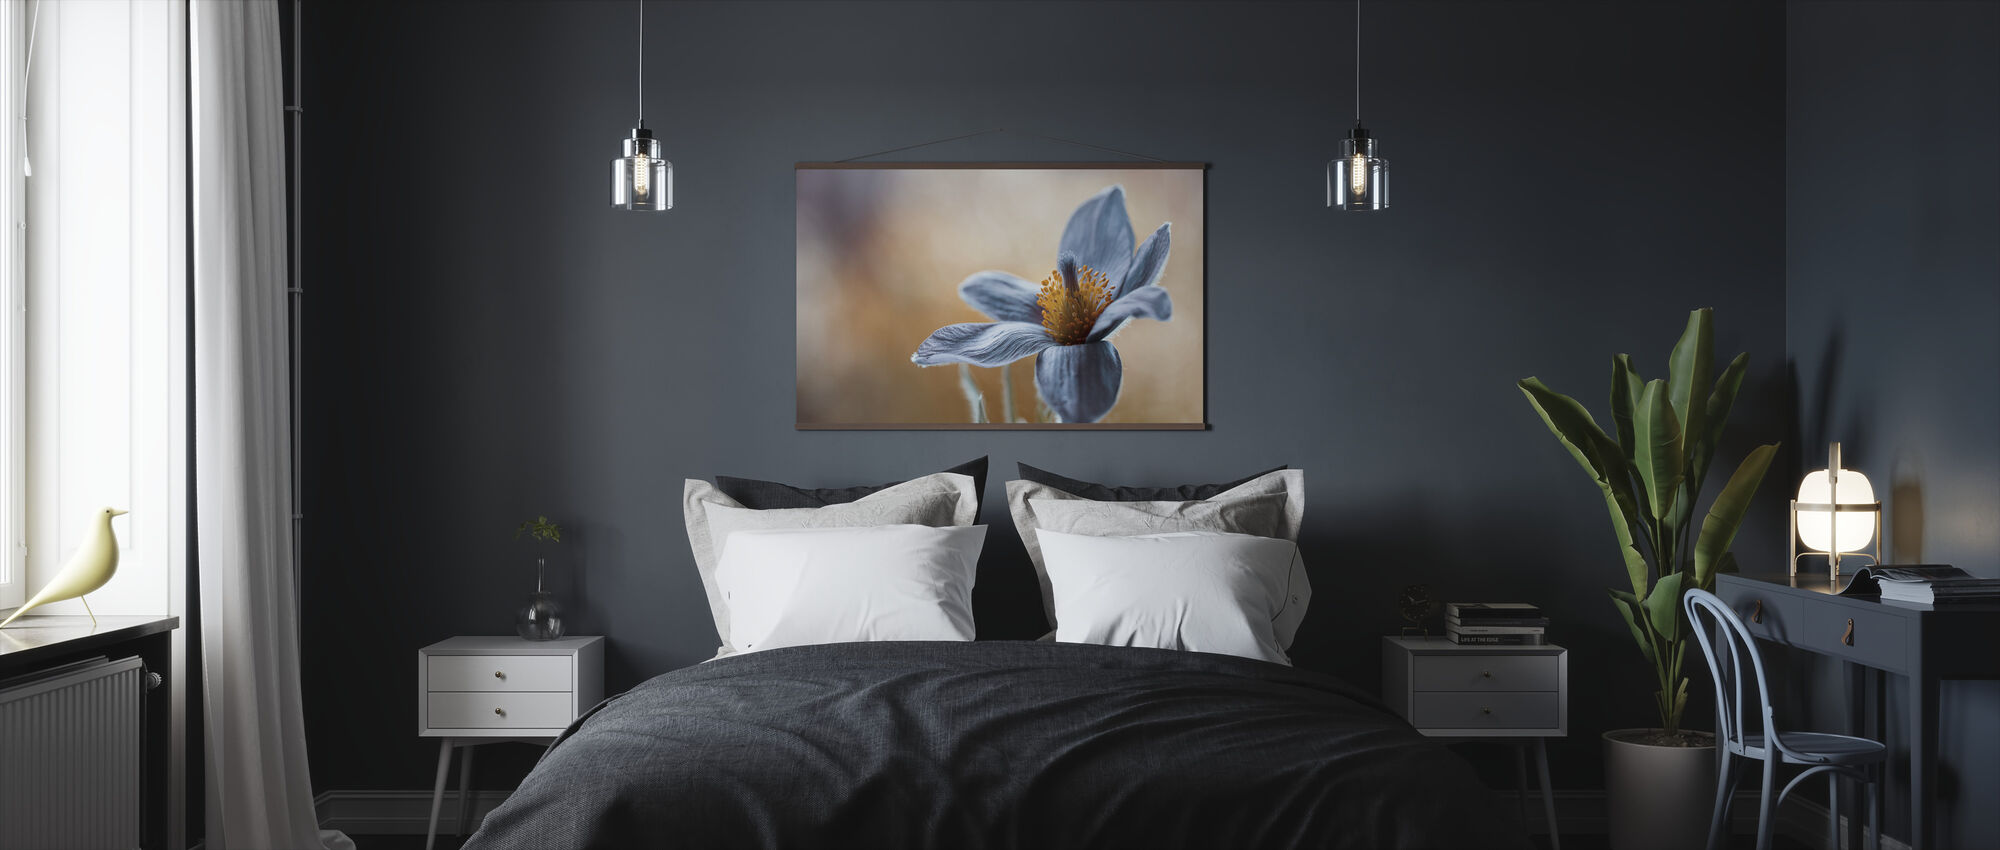 Not just any Flower - Poster - Bedroom